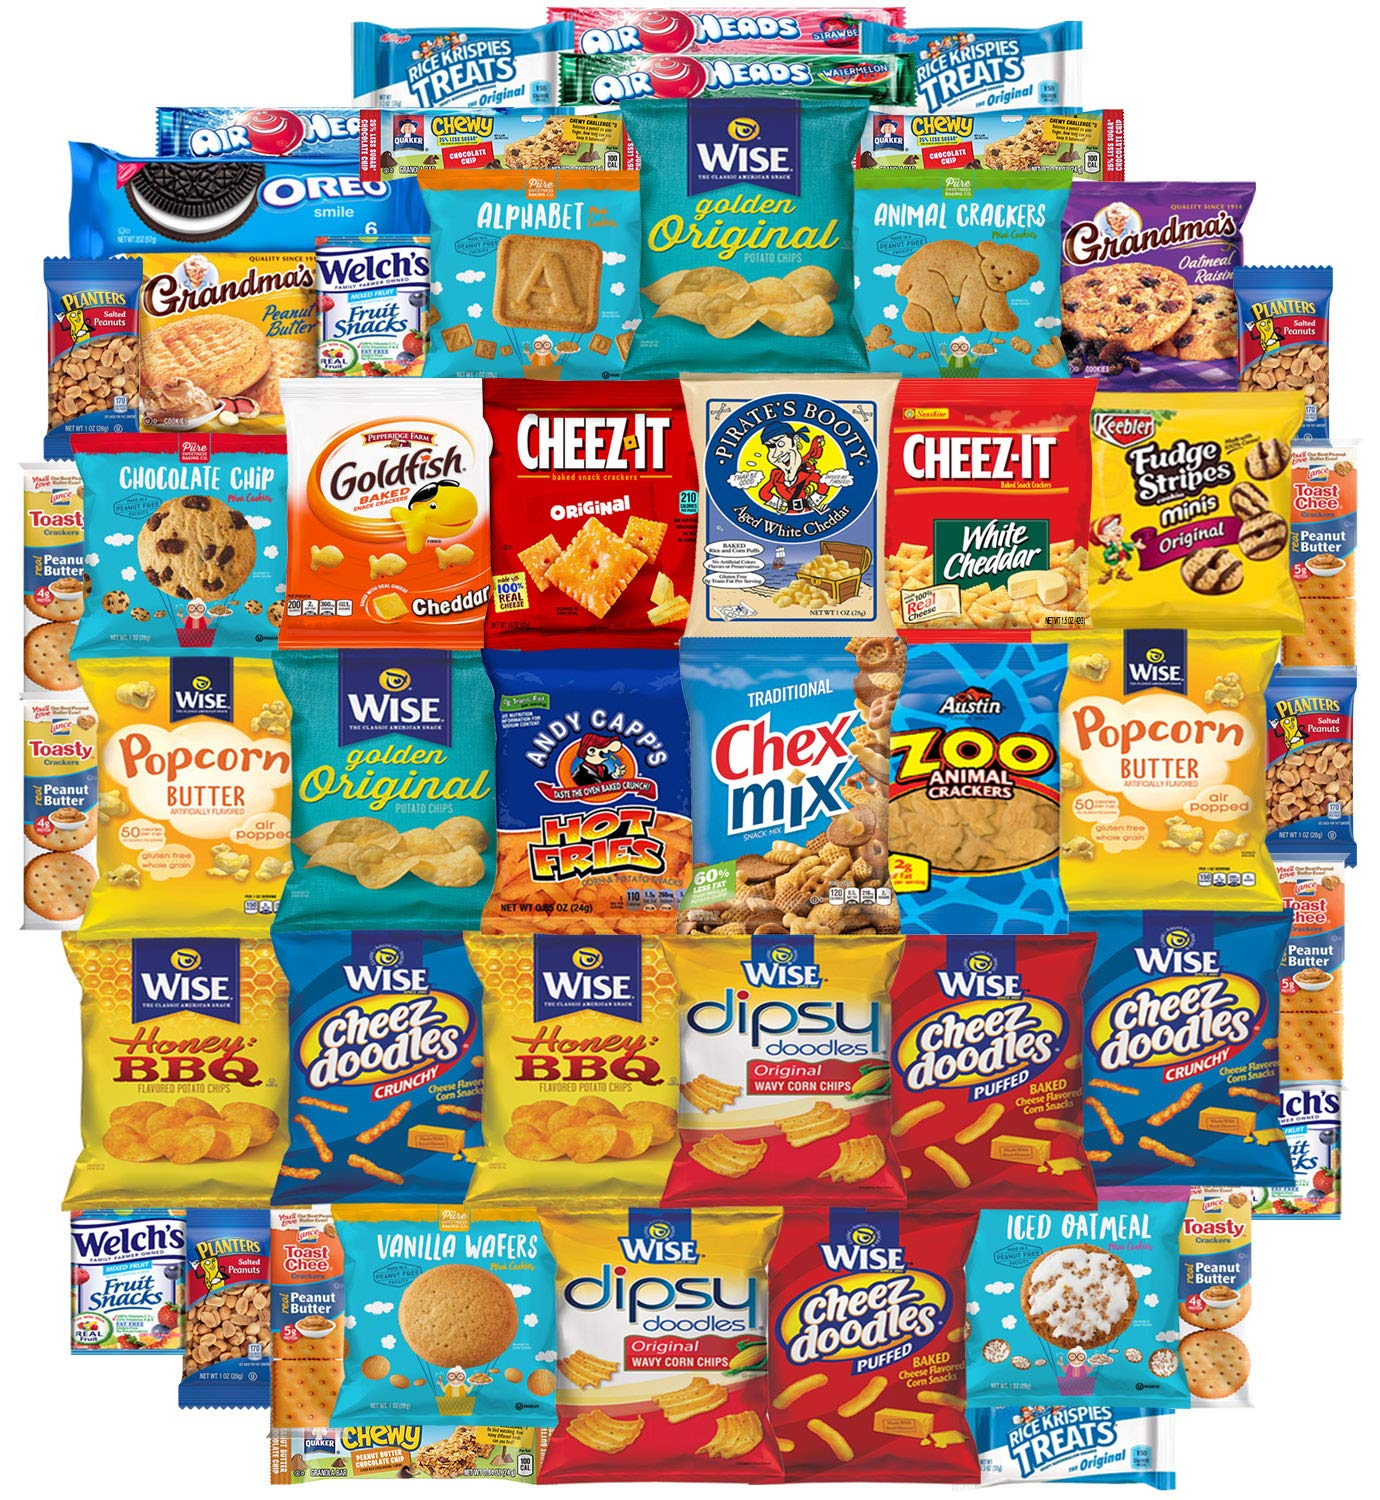 Variety Fun Care Package (50 Count) - Ultimate Snacks Sampler - Bulk Cookies, Chips, Crackers, Candy, Mixed Bars Variety Pack - Friends & Family, Military, College Food Box by Custom Varietea (Image #1)